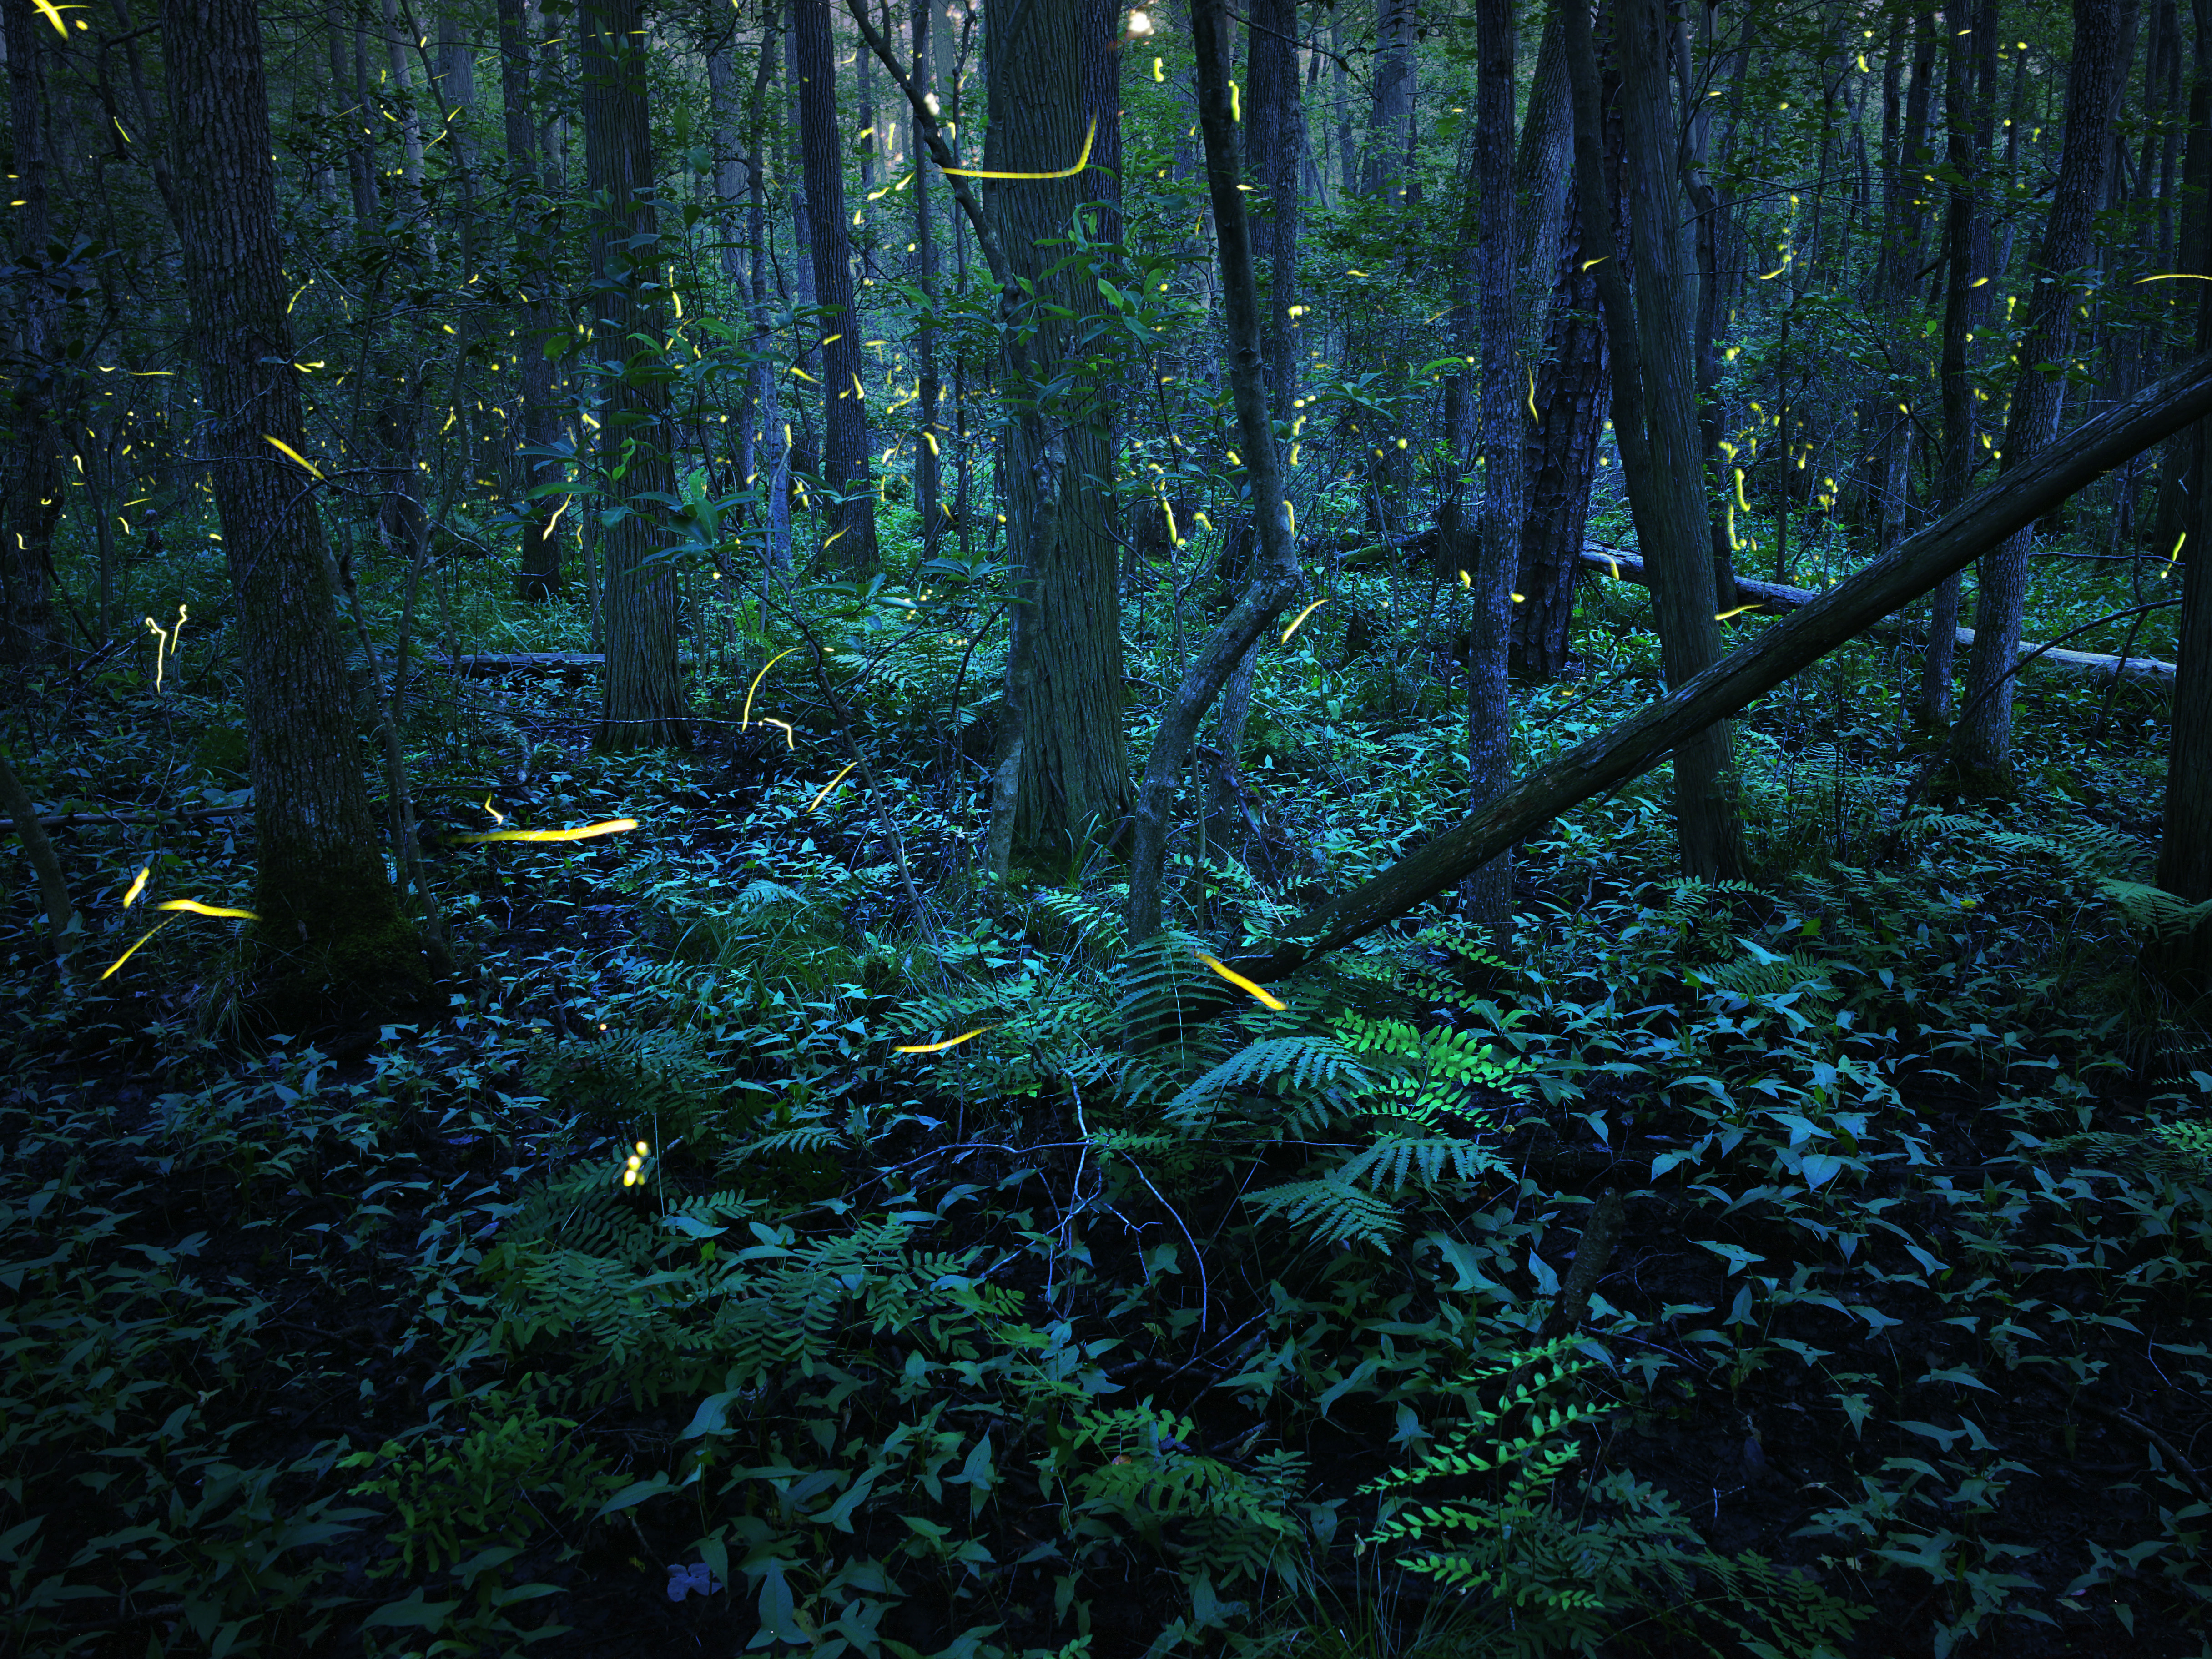 A dark forest filled with ferns, downed trees, rocks, and lush underbrush, is filled with bright dashes of yellow in this long-exposure shot of fireflies at night.